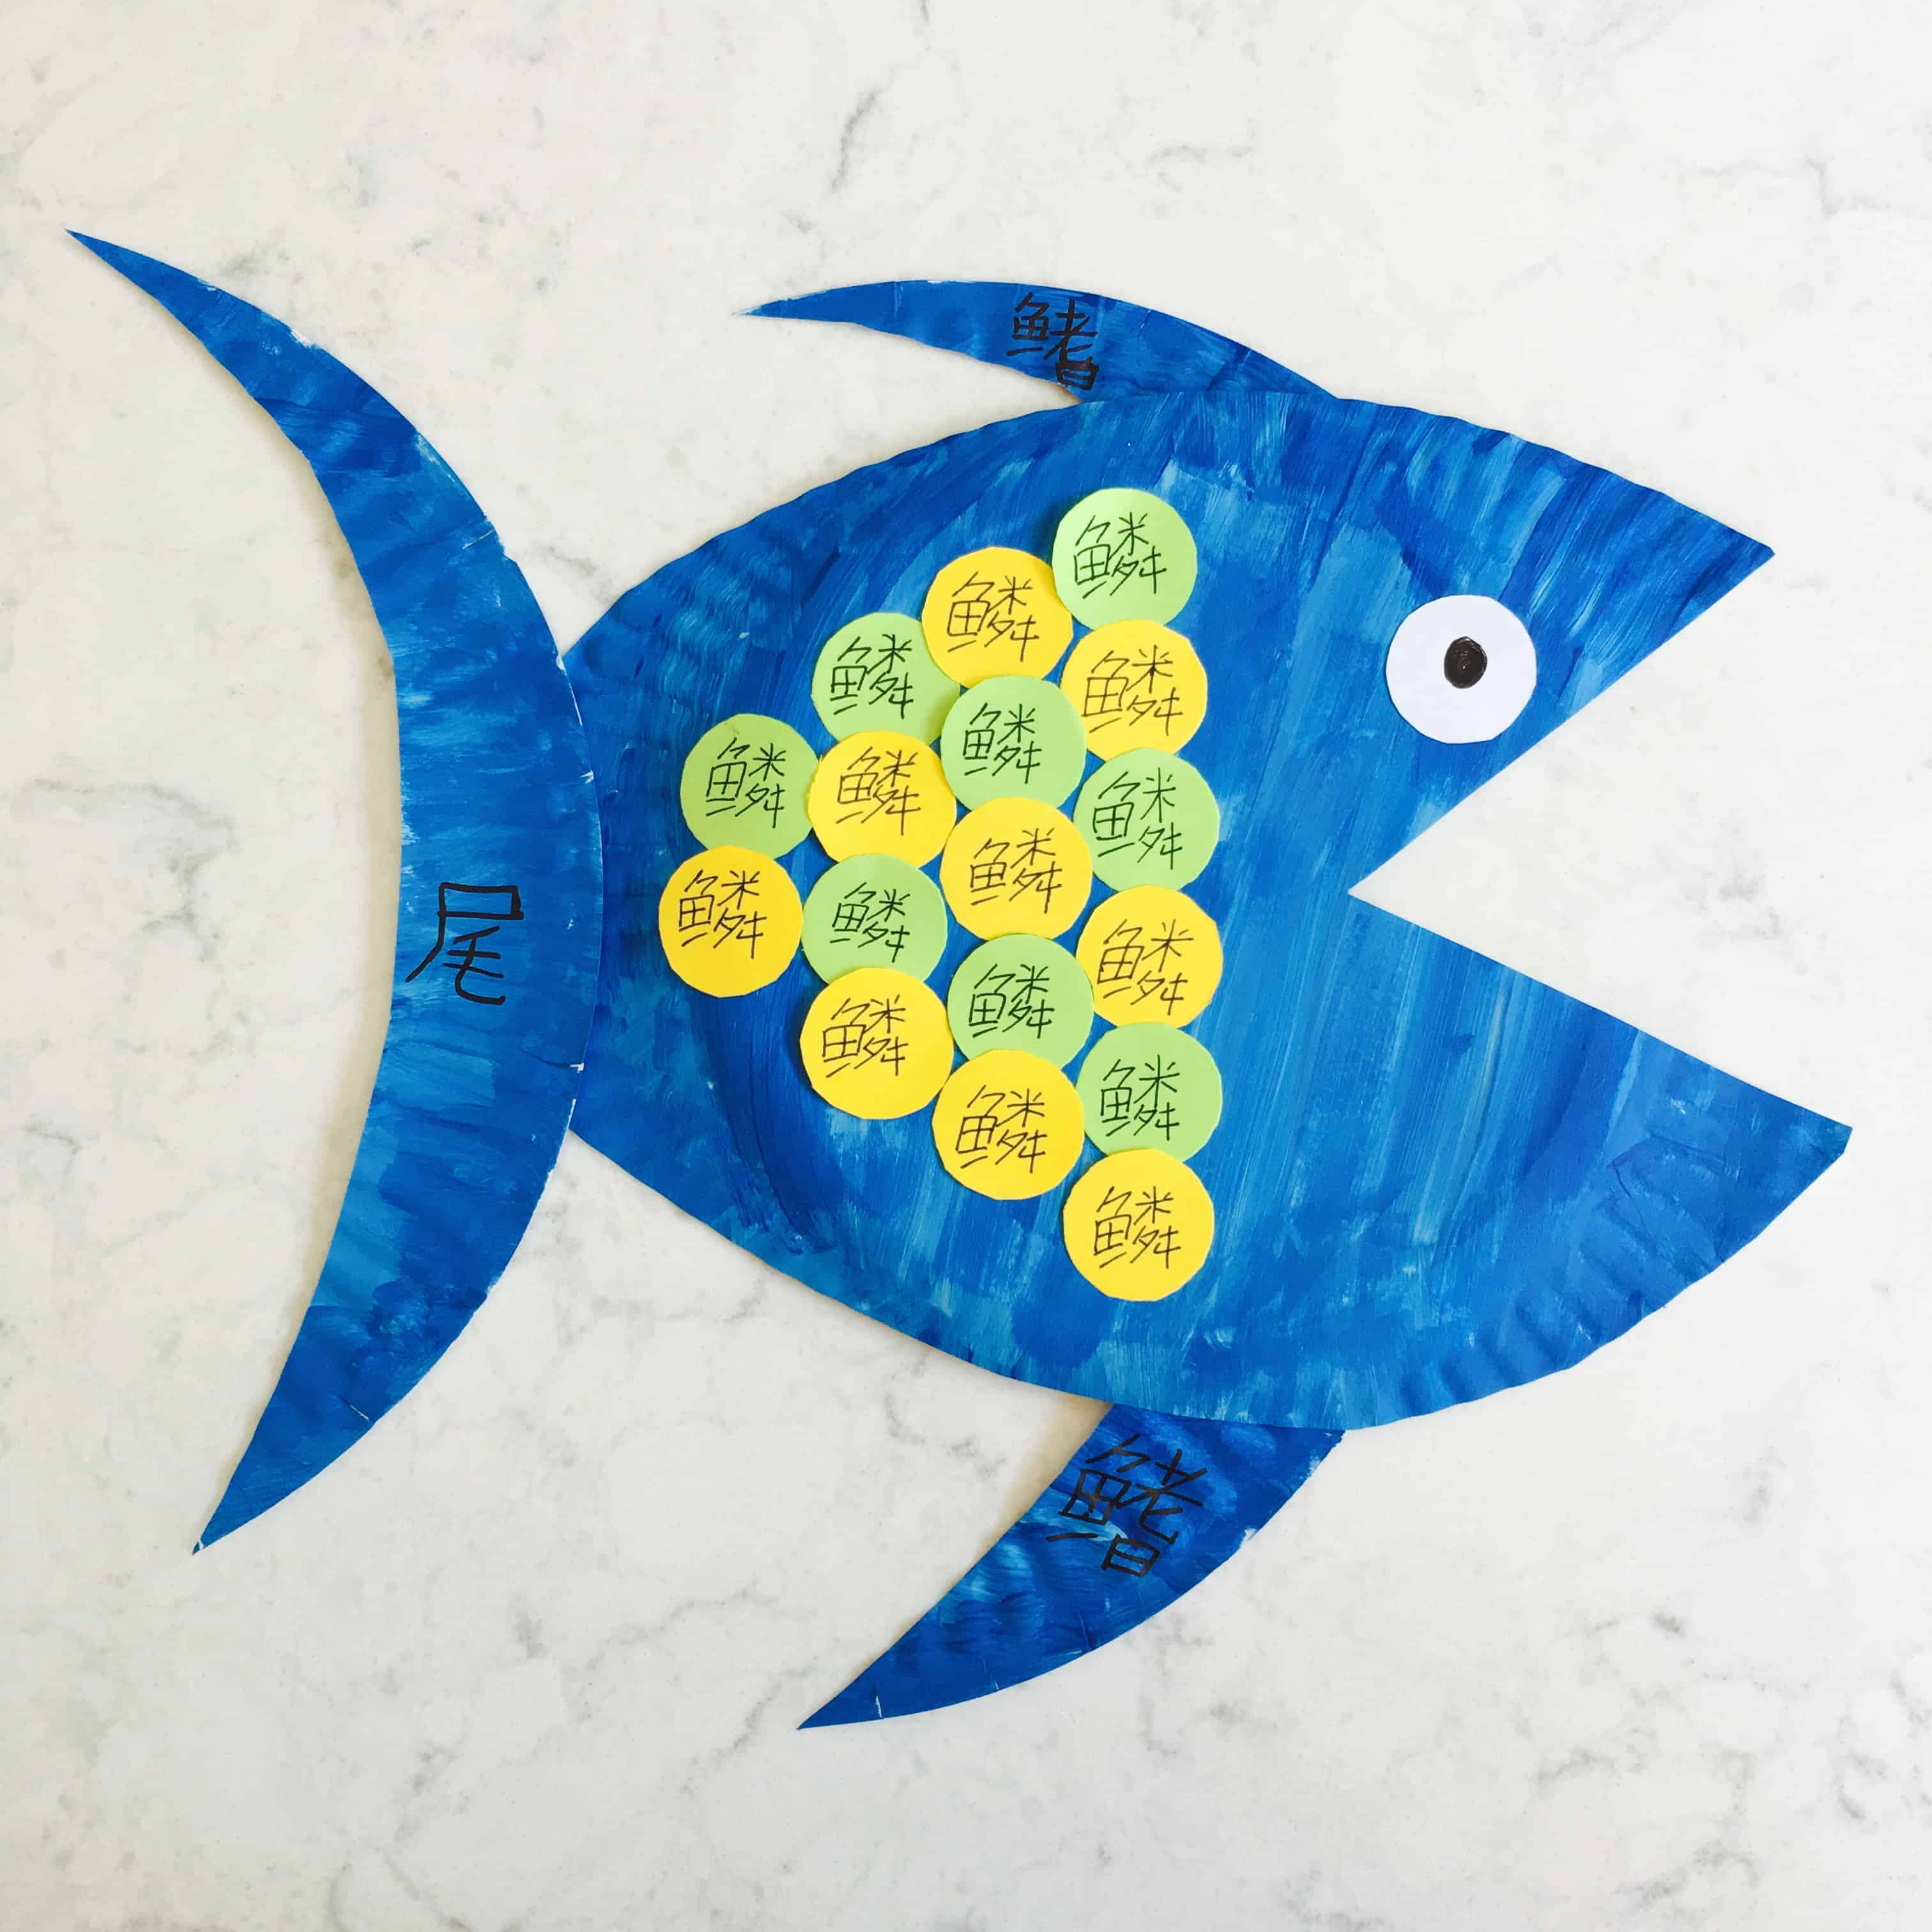 Fish Anatomy Paper Plate Craft – Fun Learning Activity for Kids!